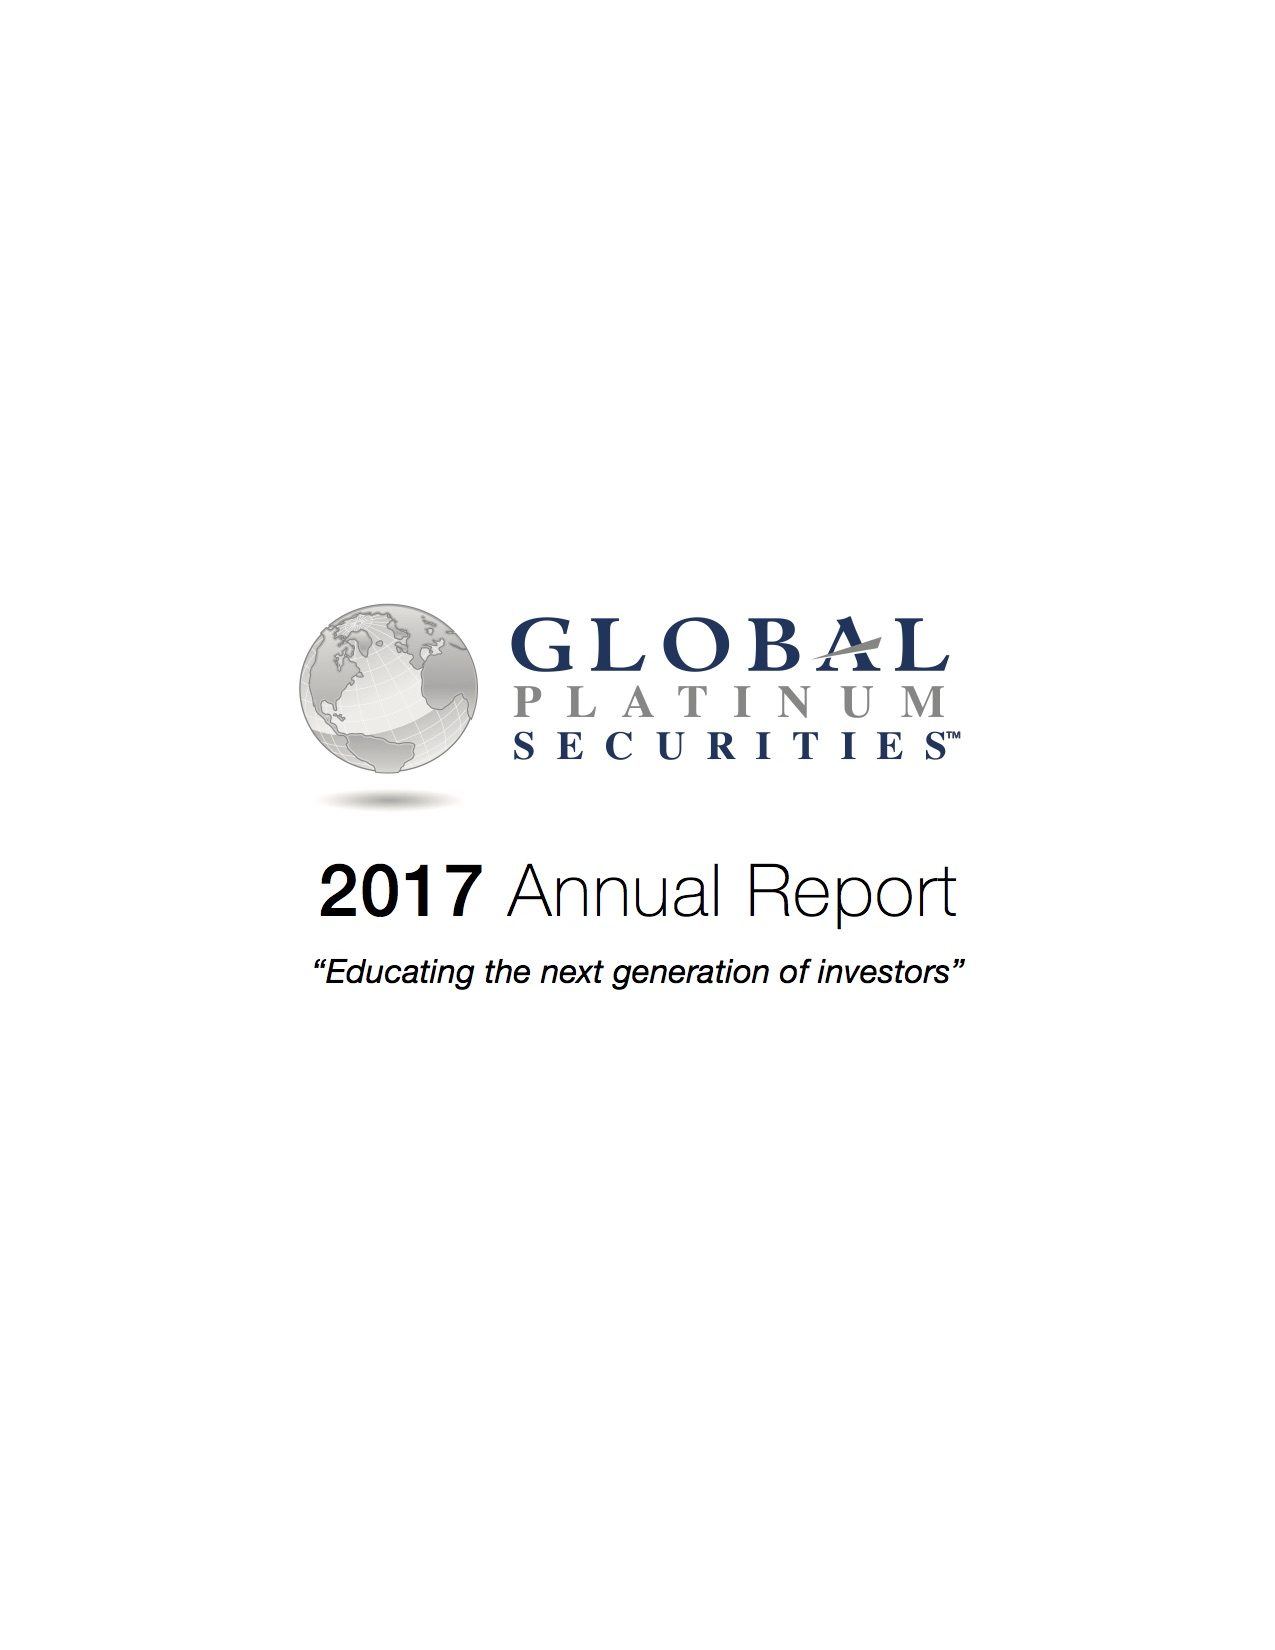 2017 Annual Report GPS-4.jpg